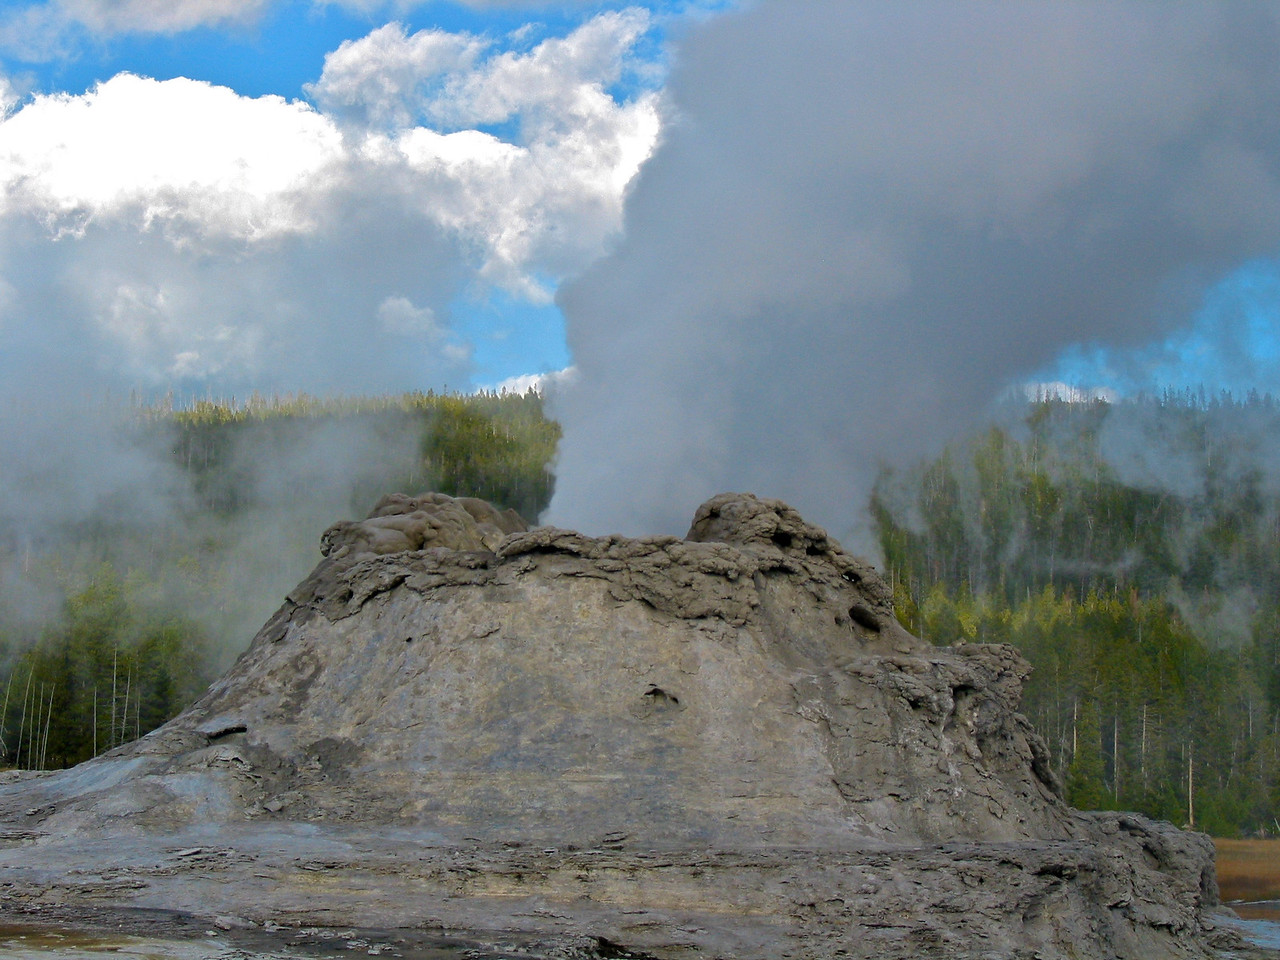 """The Yellowstone Caldera is the largest volcanic system in North America. It has been termed a """"supervolcano"""" because the caldera was formed by exceptionally large explosive eruptions. The current caldera was created by a cataclysmic eruption that occurred 640,000 years ago, which released 240 cubic miles (1,000 km³) of ash, rock and pyroclastic materials. This eruption was 1,000 times larger than the 1980 eruption of Mount St. Helens."""